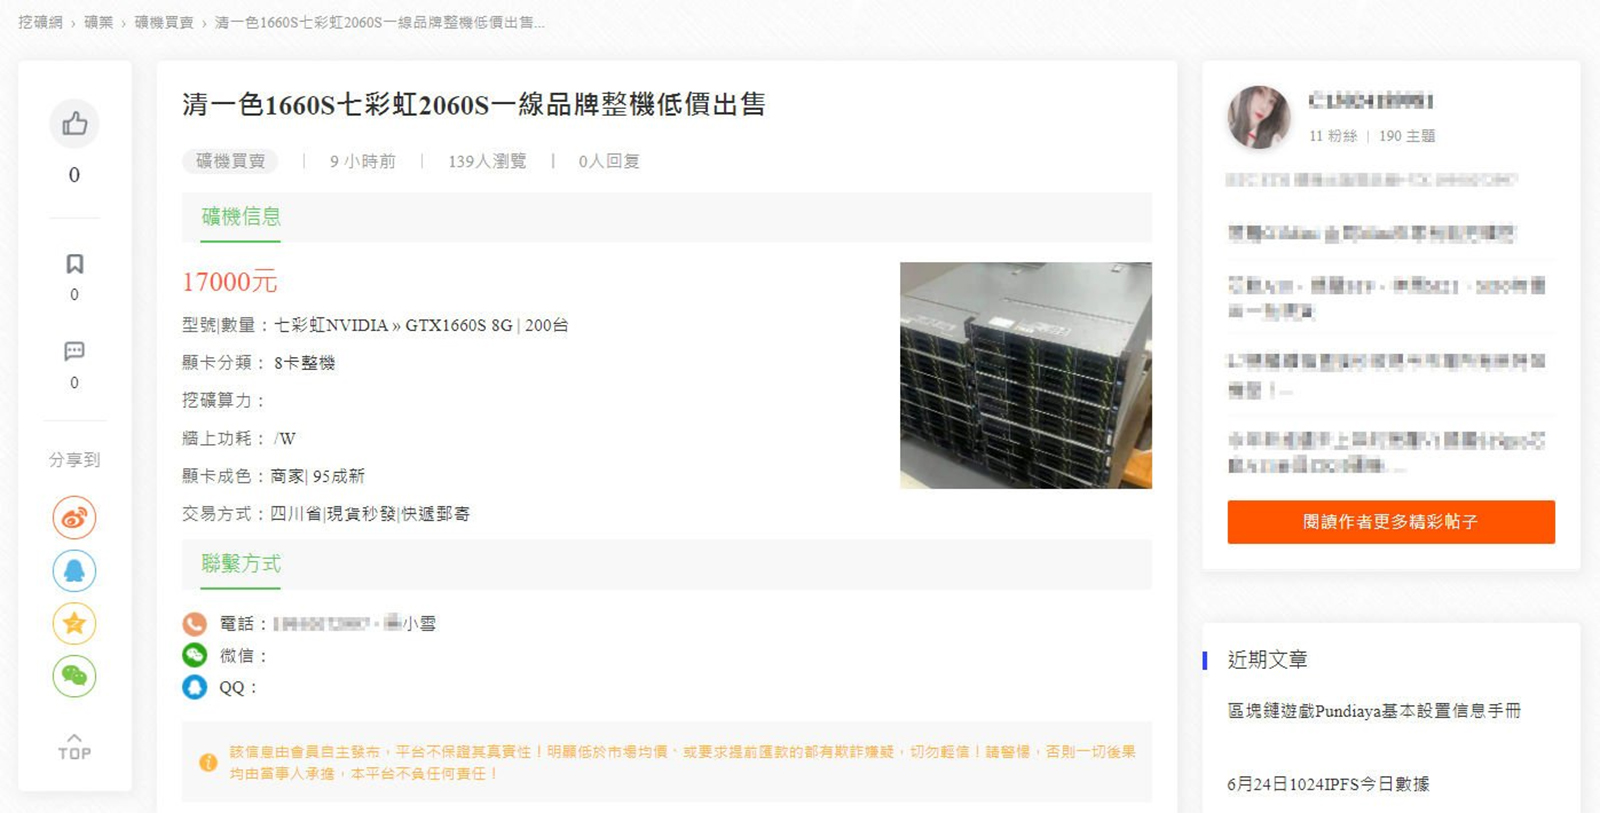 Chinese Resale Site Listing For Nvidia GTX 1660 Super Graphics Cards Being Sold In Bulk